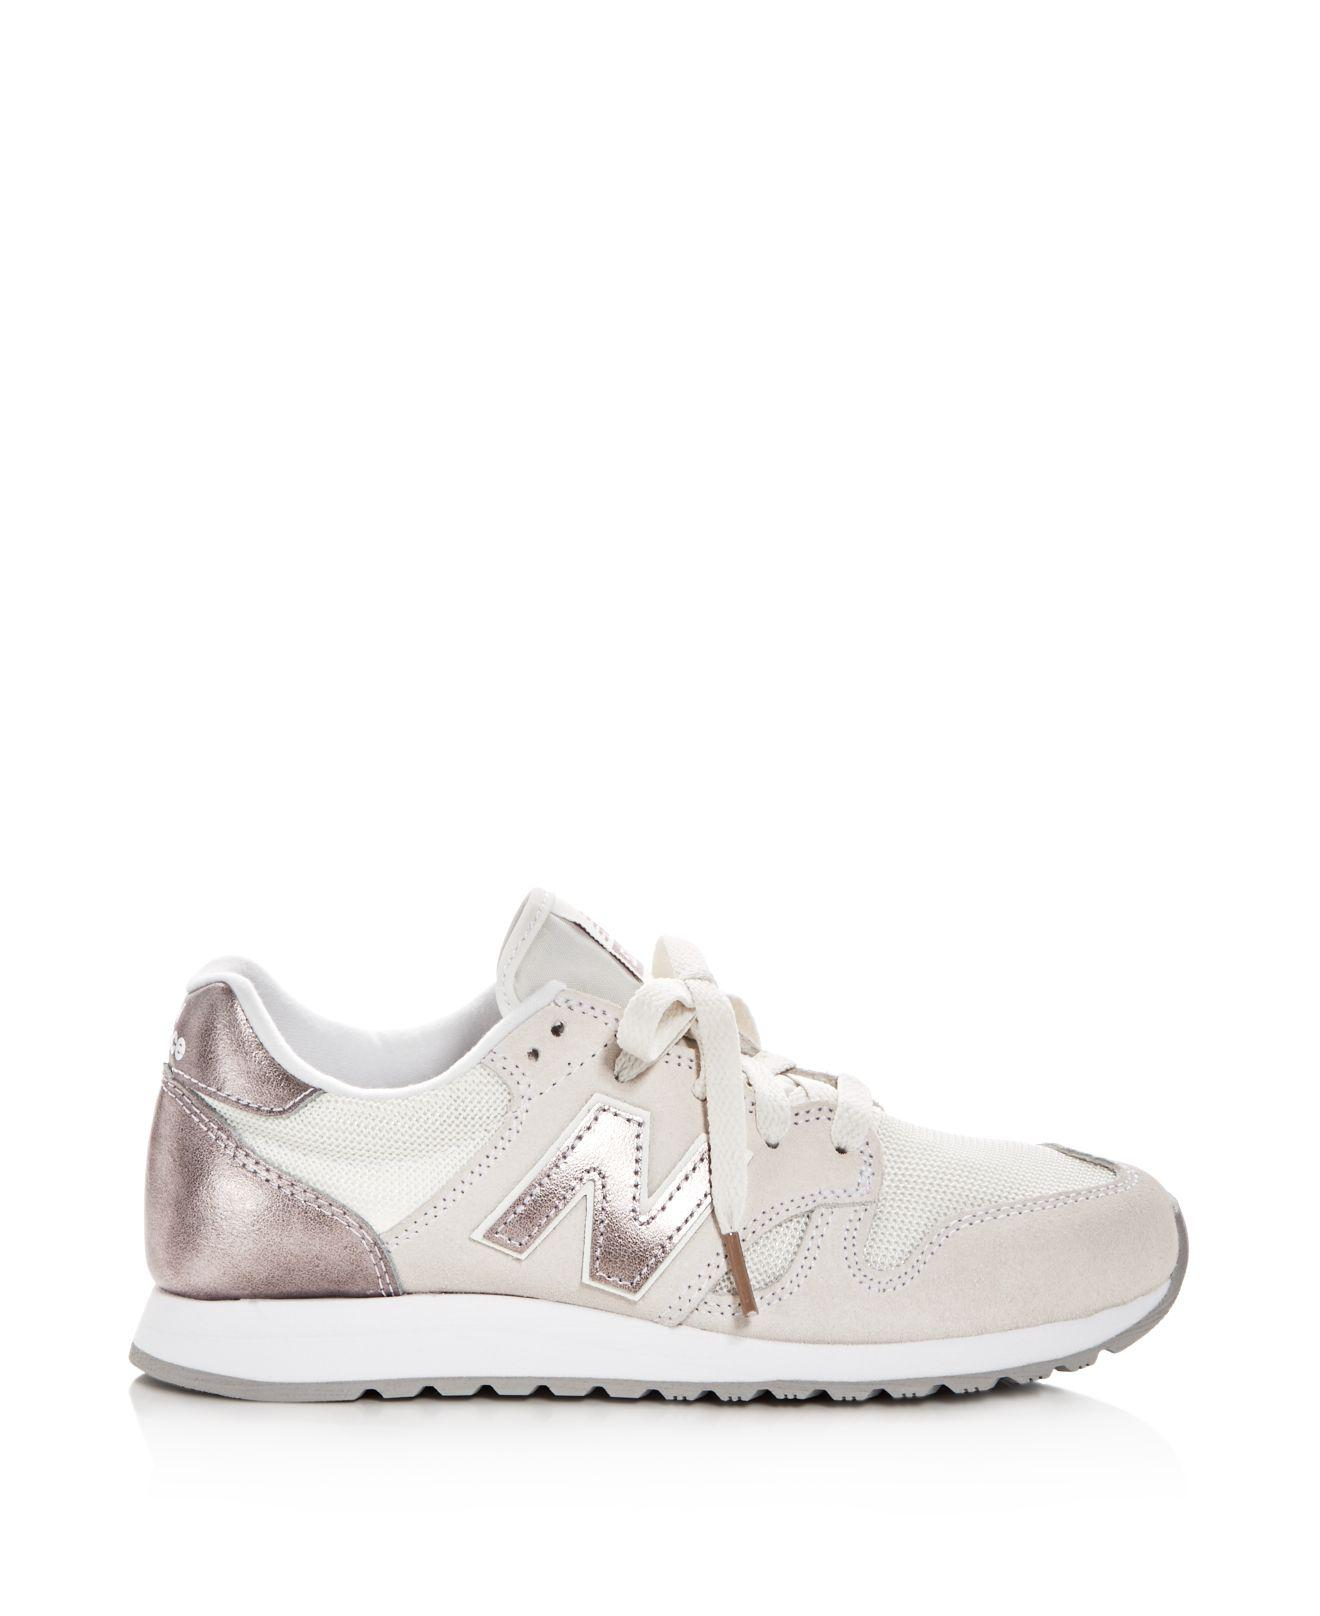 c24d1e88a7ad6 New Balance Women's 520 Lace Up Sneakers in White - Lyst